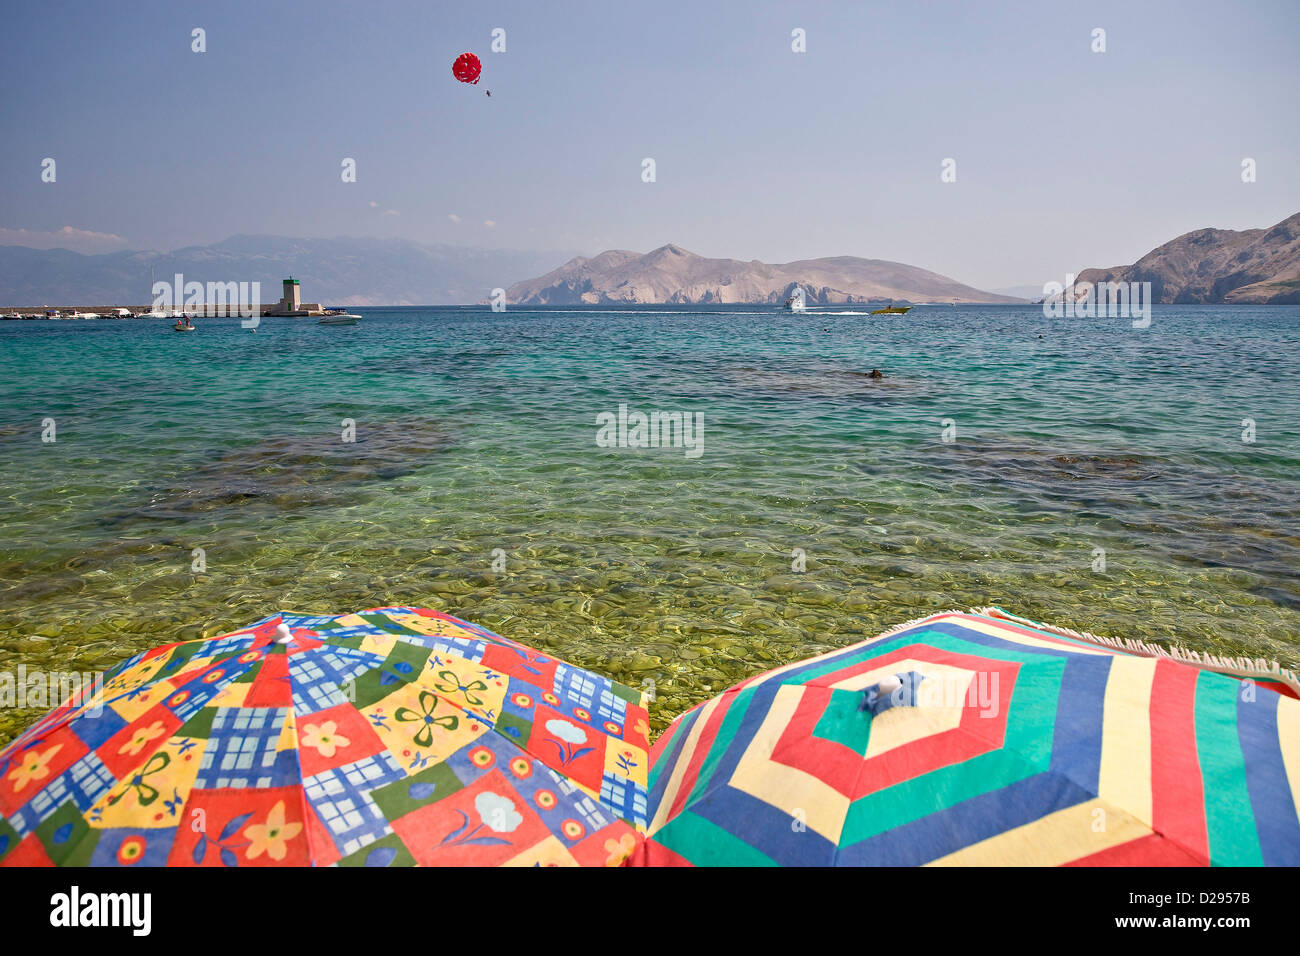 Two sunshades in front of the Baska - Stock Image